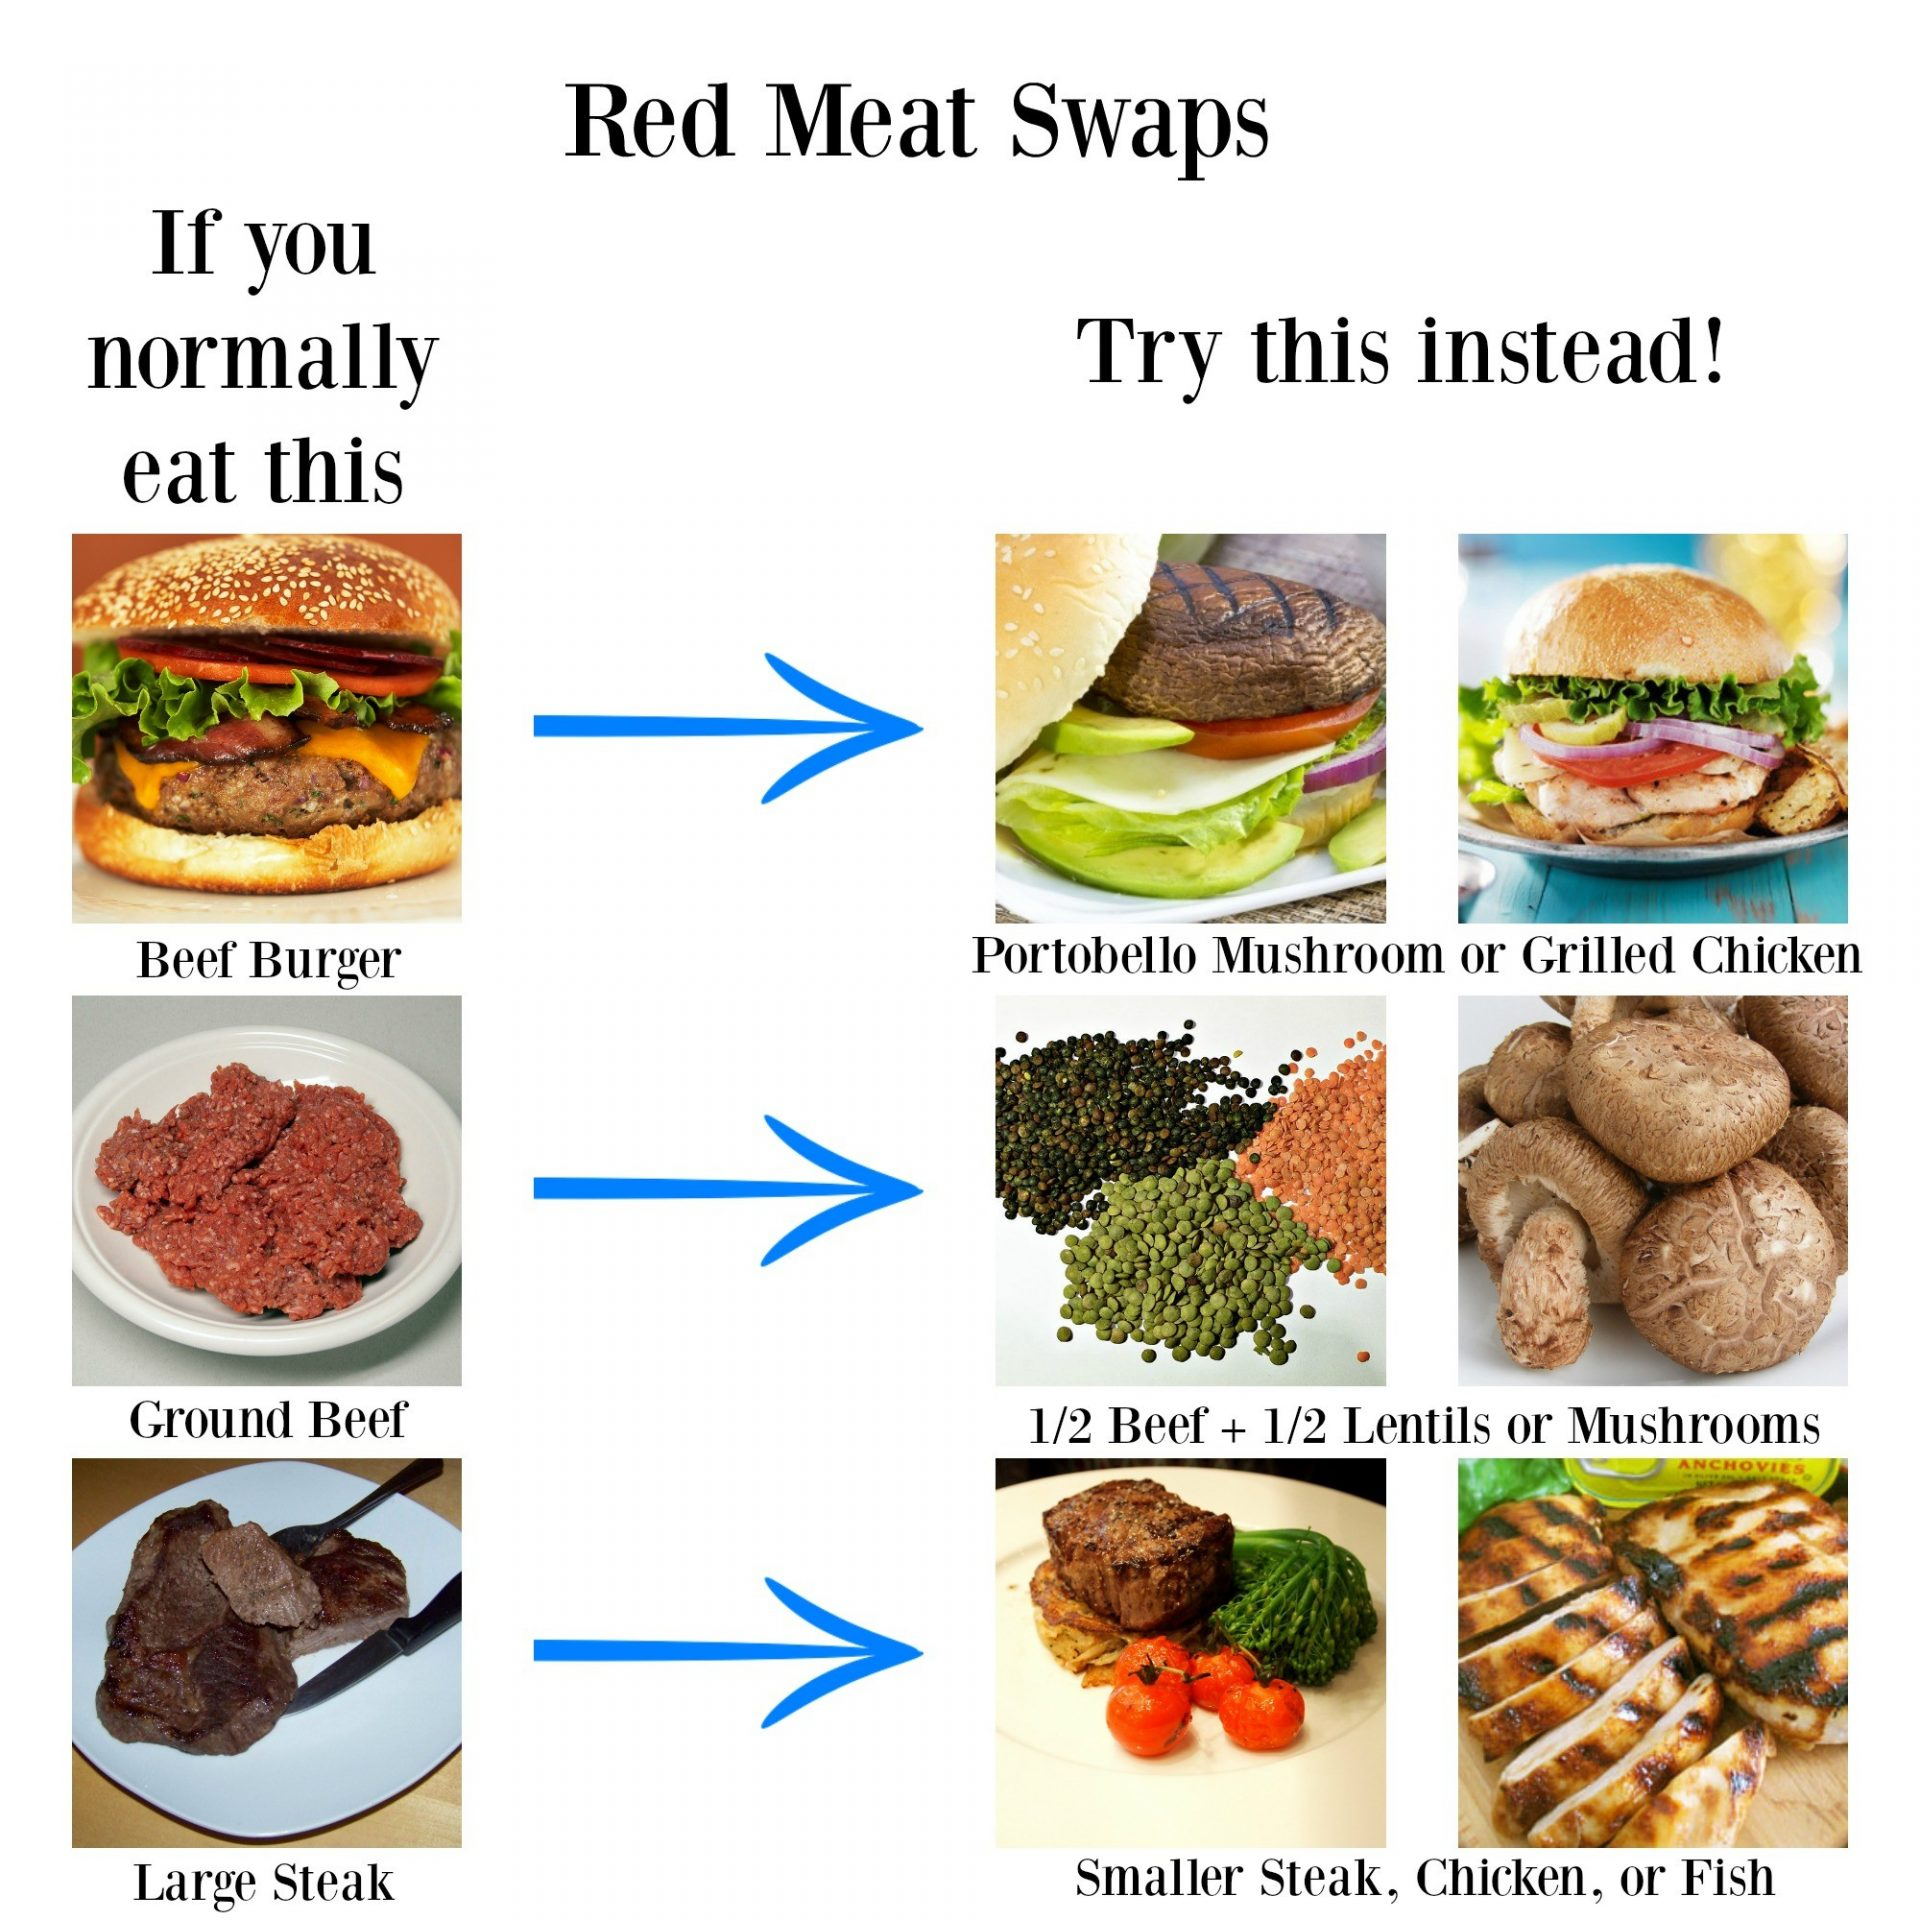 processed meat, Tasty Swaps to Help You Eat Less Red and Processed Meats